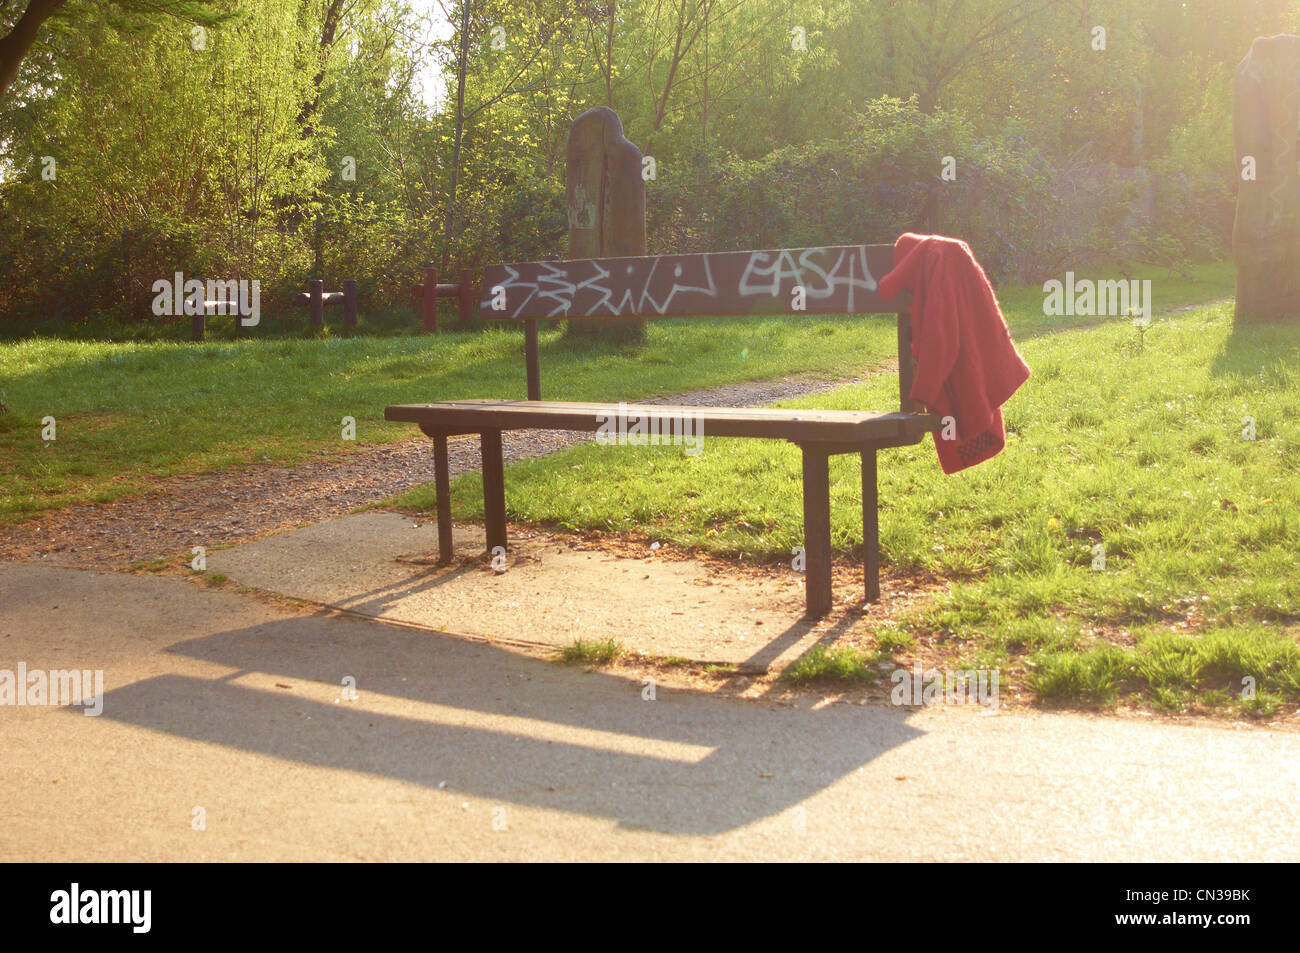 Lost jacket on a park bench - Stock Image